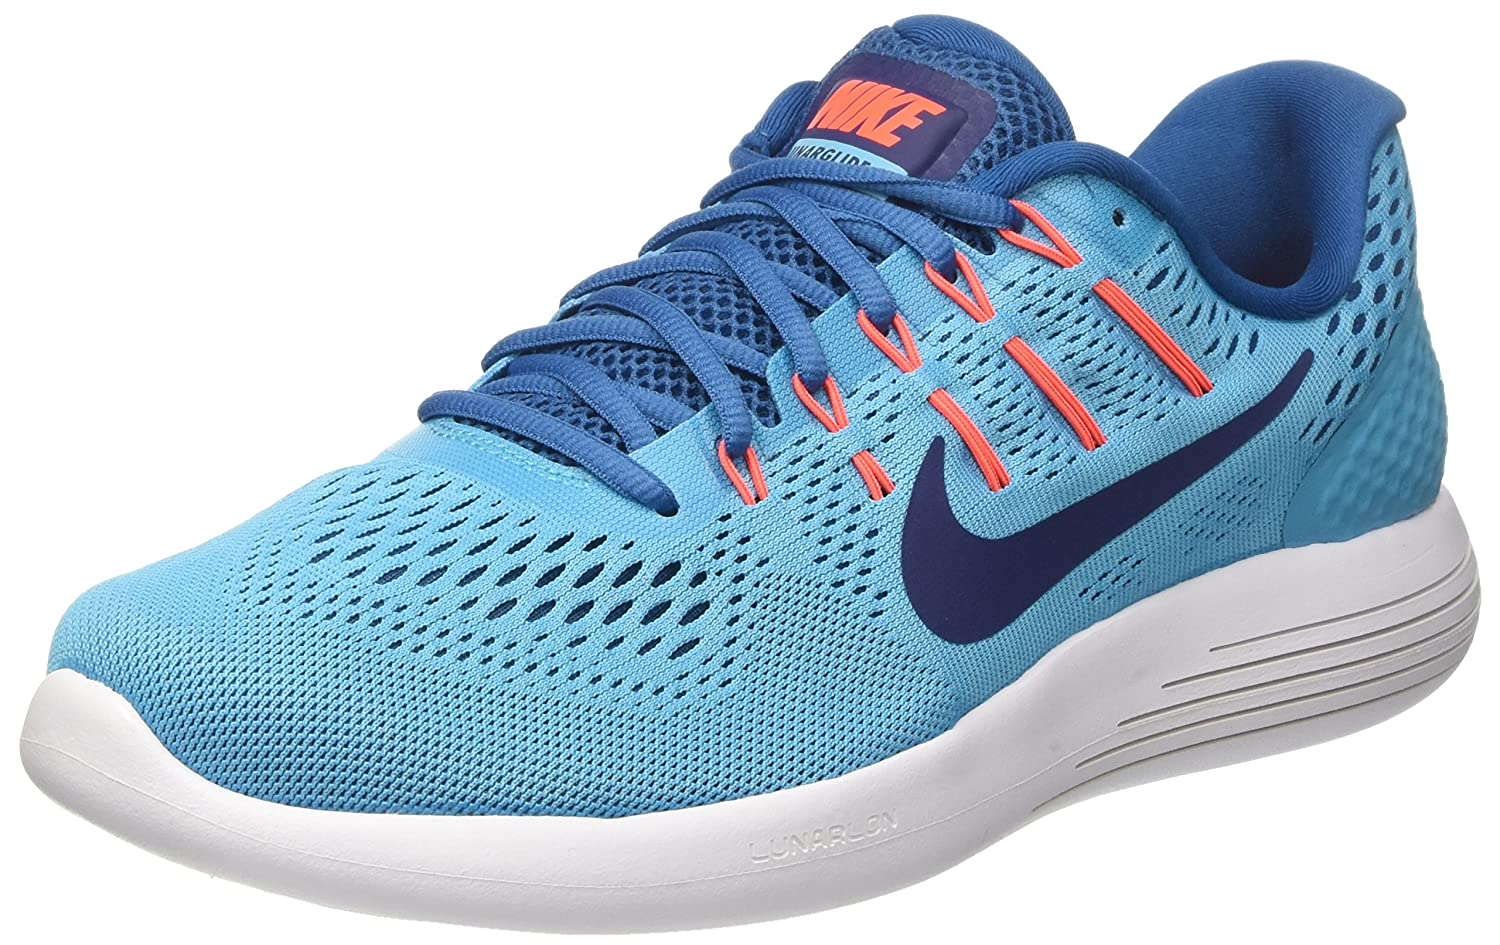 on sale 7ad90 93ff6 Nike Men's Lunarglide 8 Training Shoes